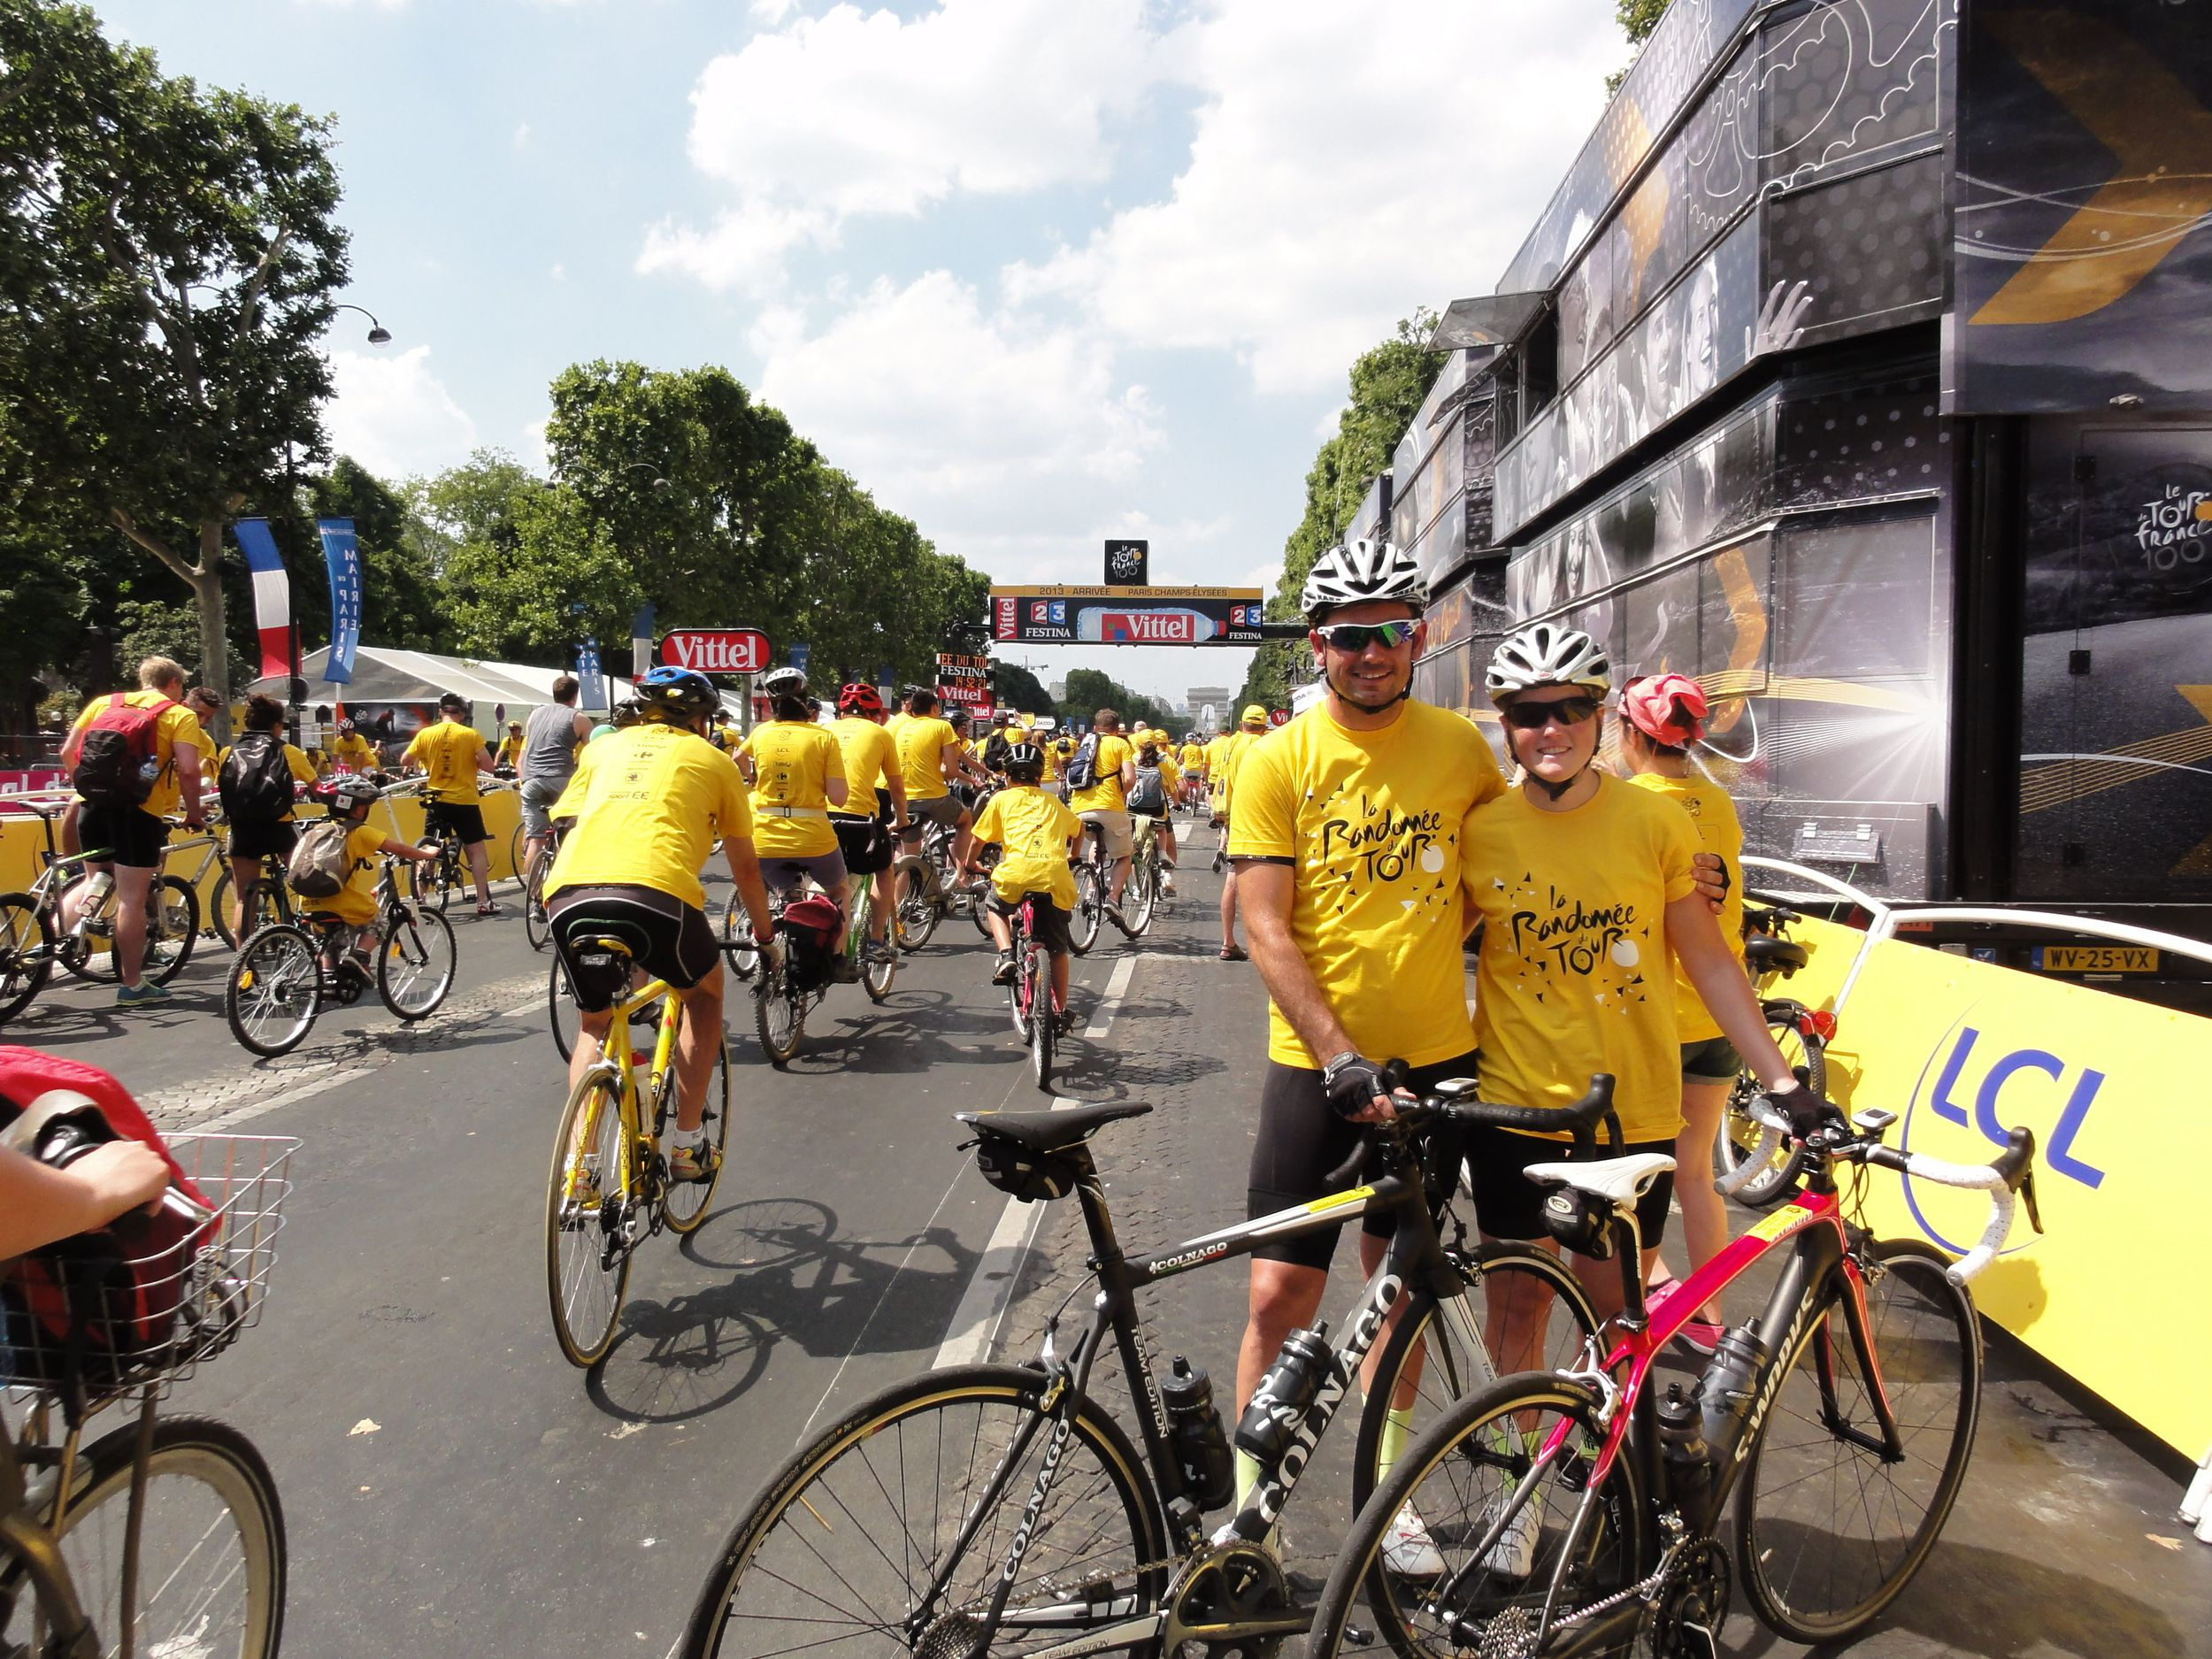 The finish line of the 100th Tour de France - a symbolic end to what had been an incredible 5 weeks in Europe!